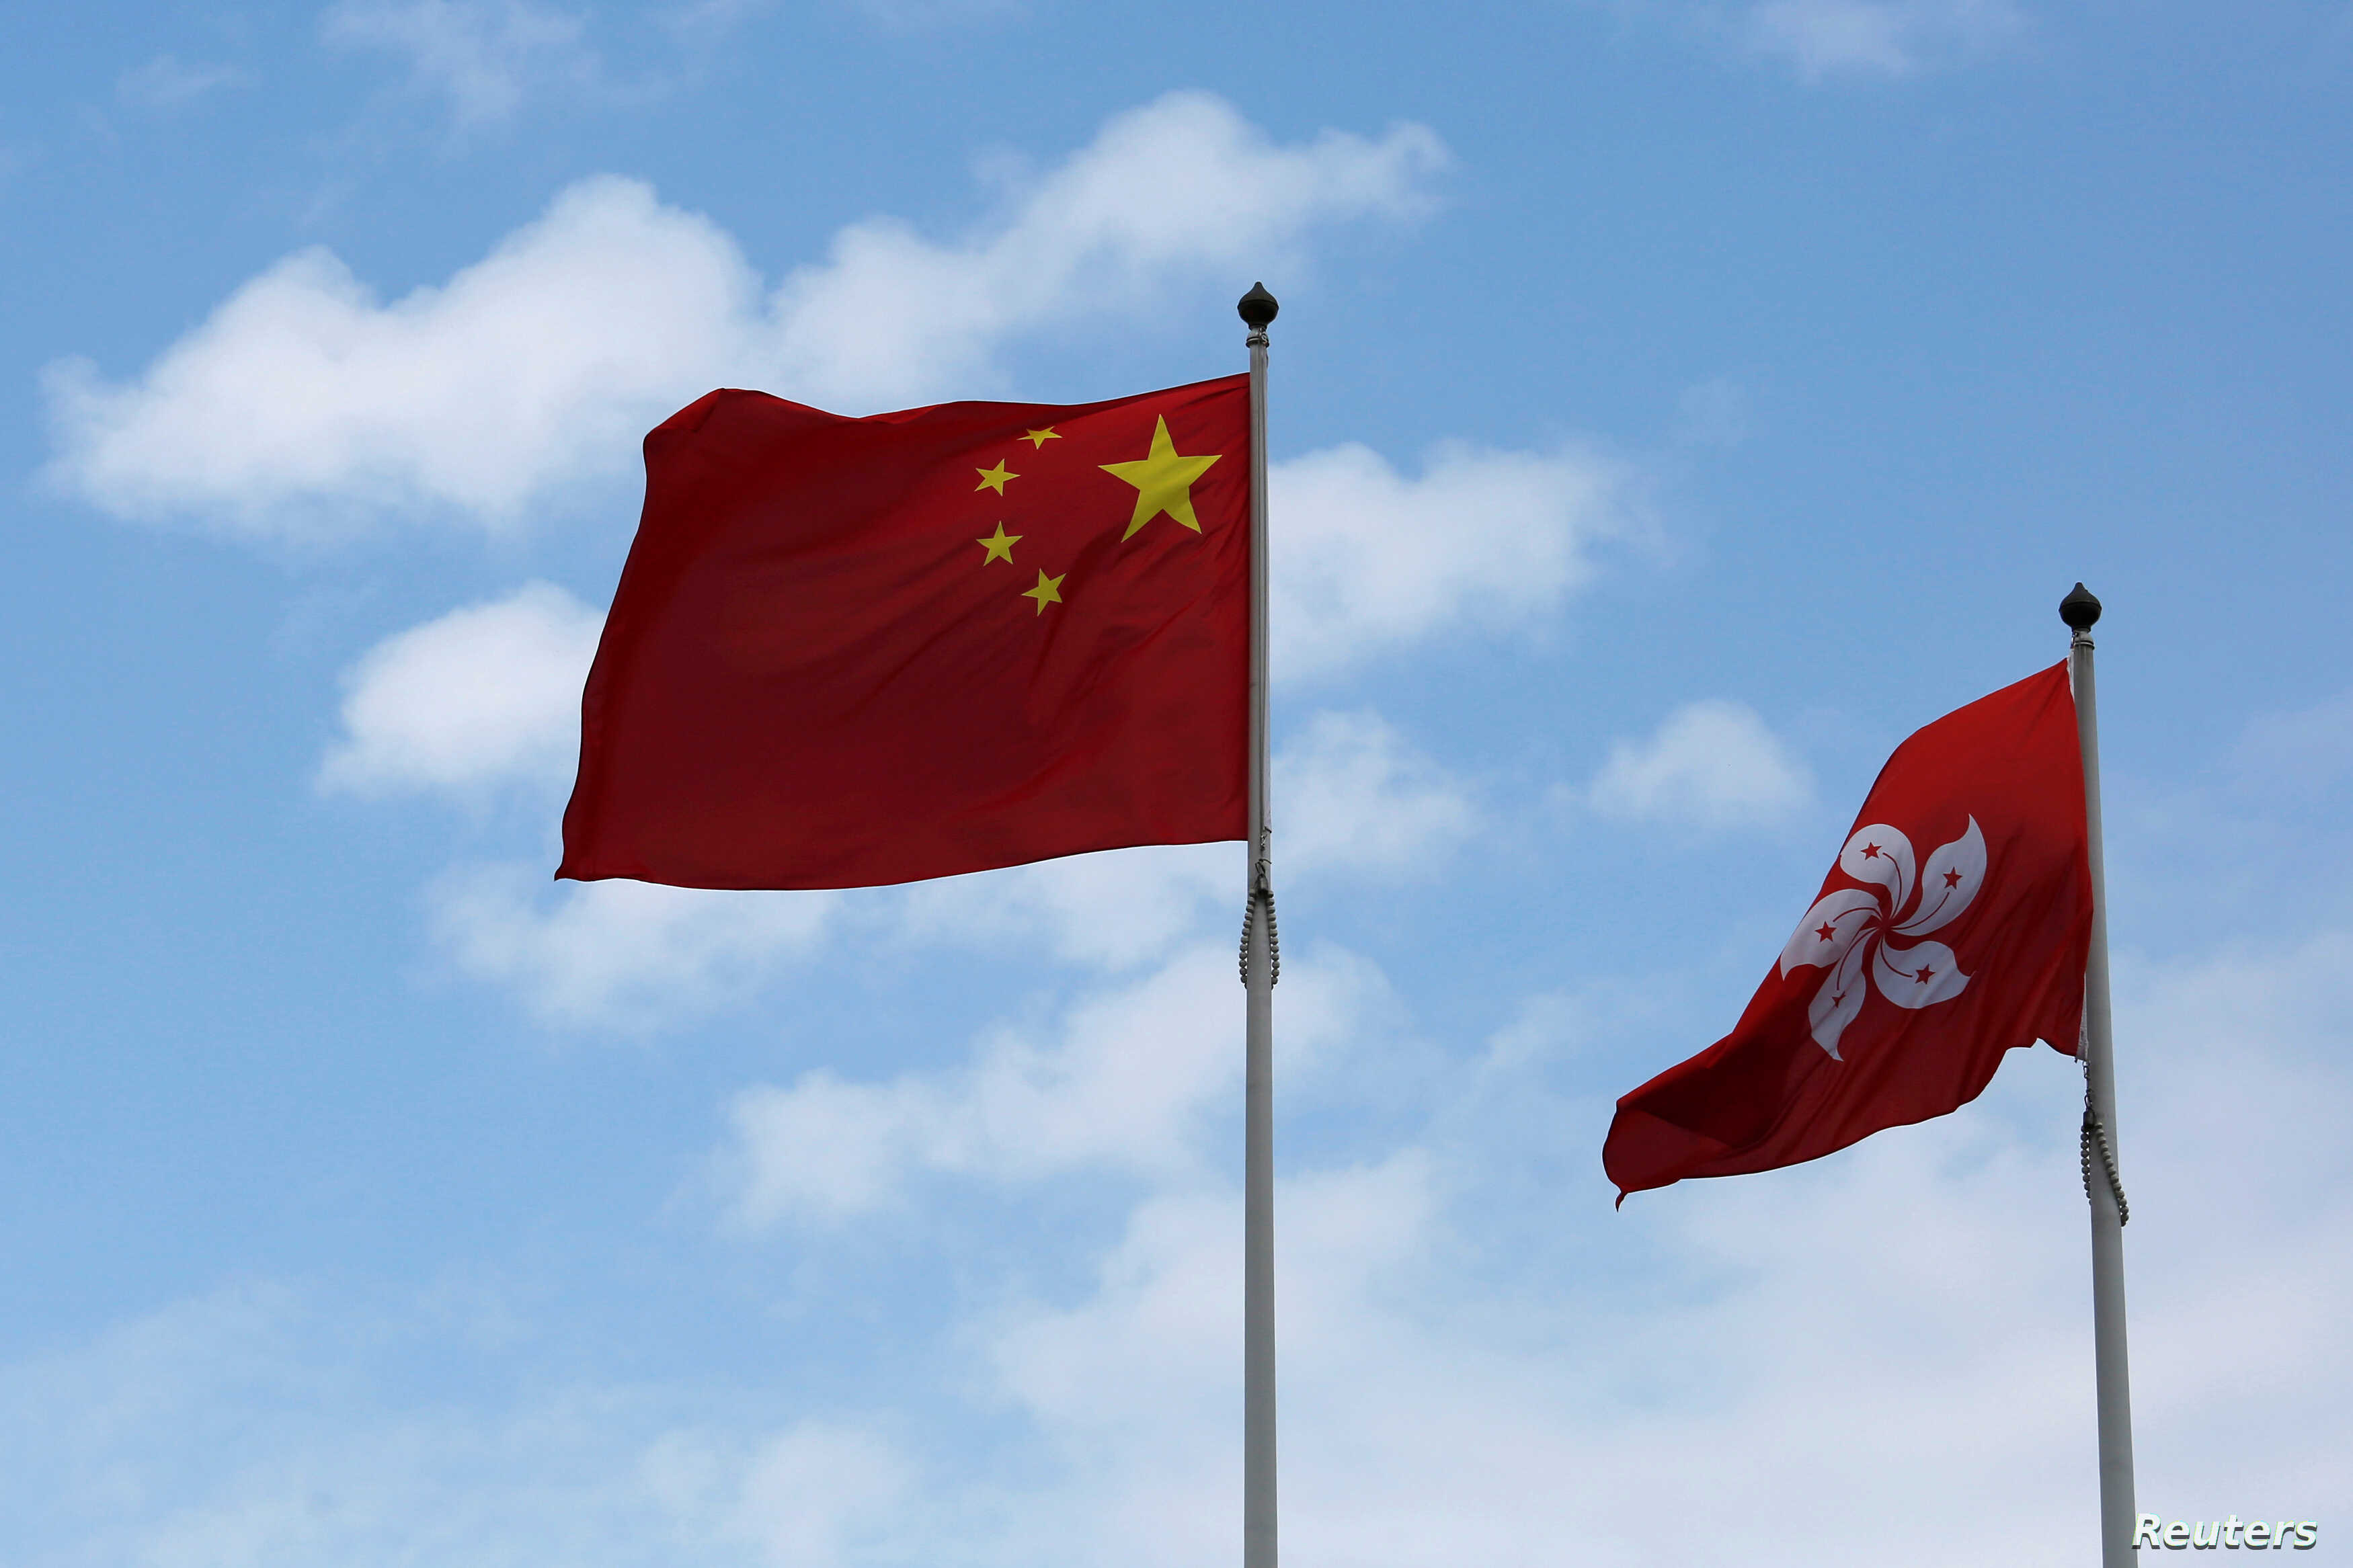 A Chinese national flag and a Hong Kong flag fly outside the Legislative Council in Hong Kong, China November 7, 2016, as China's parliament passed an interpretation of Hong Kong's Basic Law on Monday that says lawmakers must swear allegiance to the